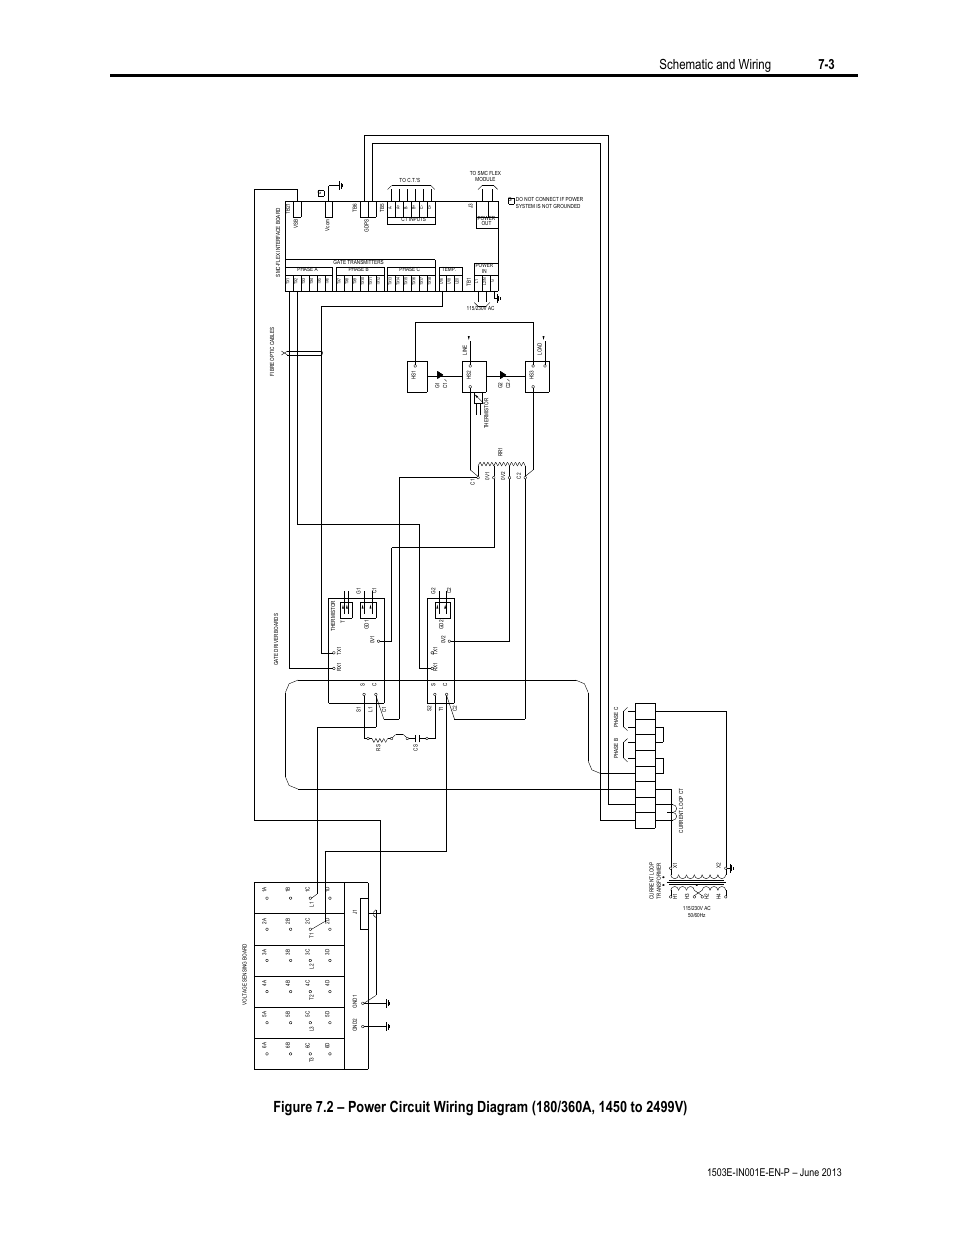 rockwell automation mv smc flex oem components page45 schematic and wiring 7 3 rockwell automation mv smc flex oem smc fan wiring diagram at bayanpartner.co